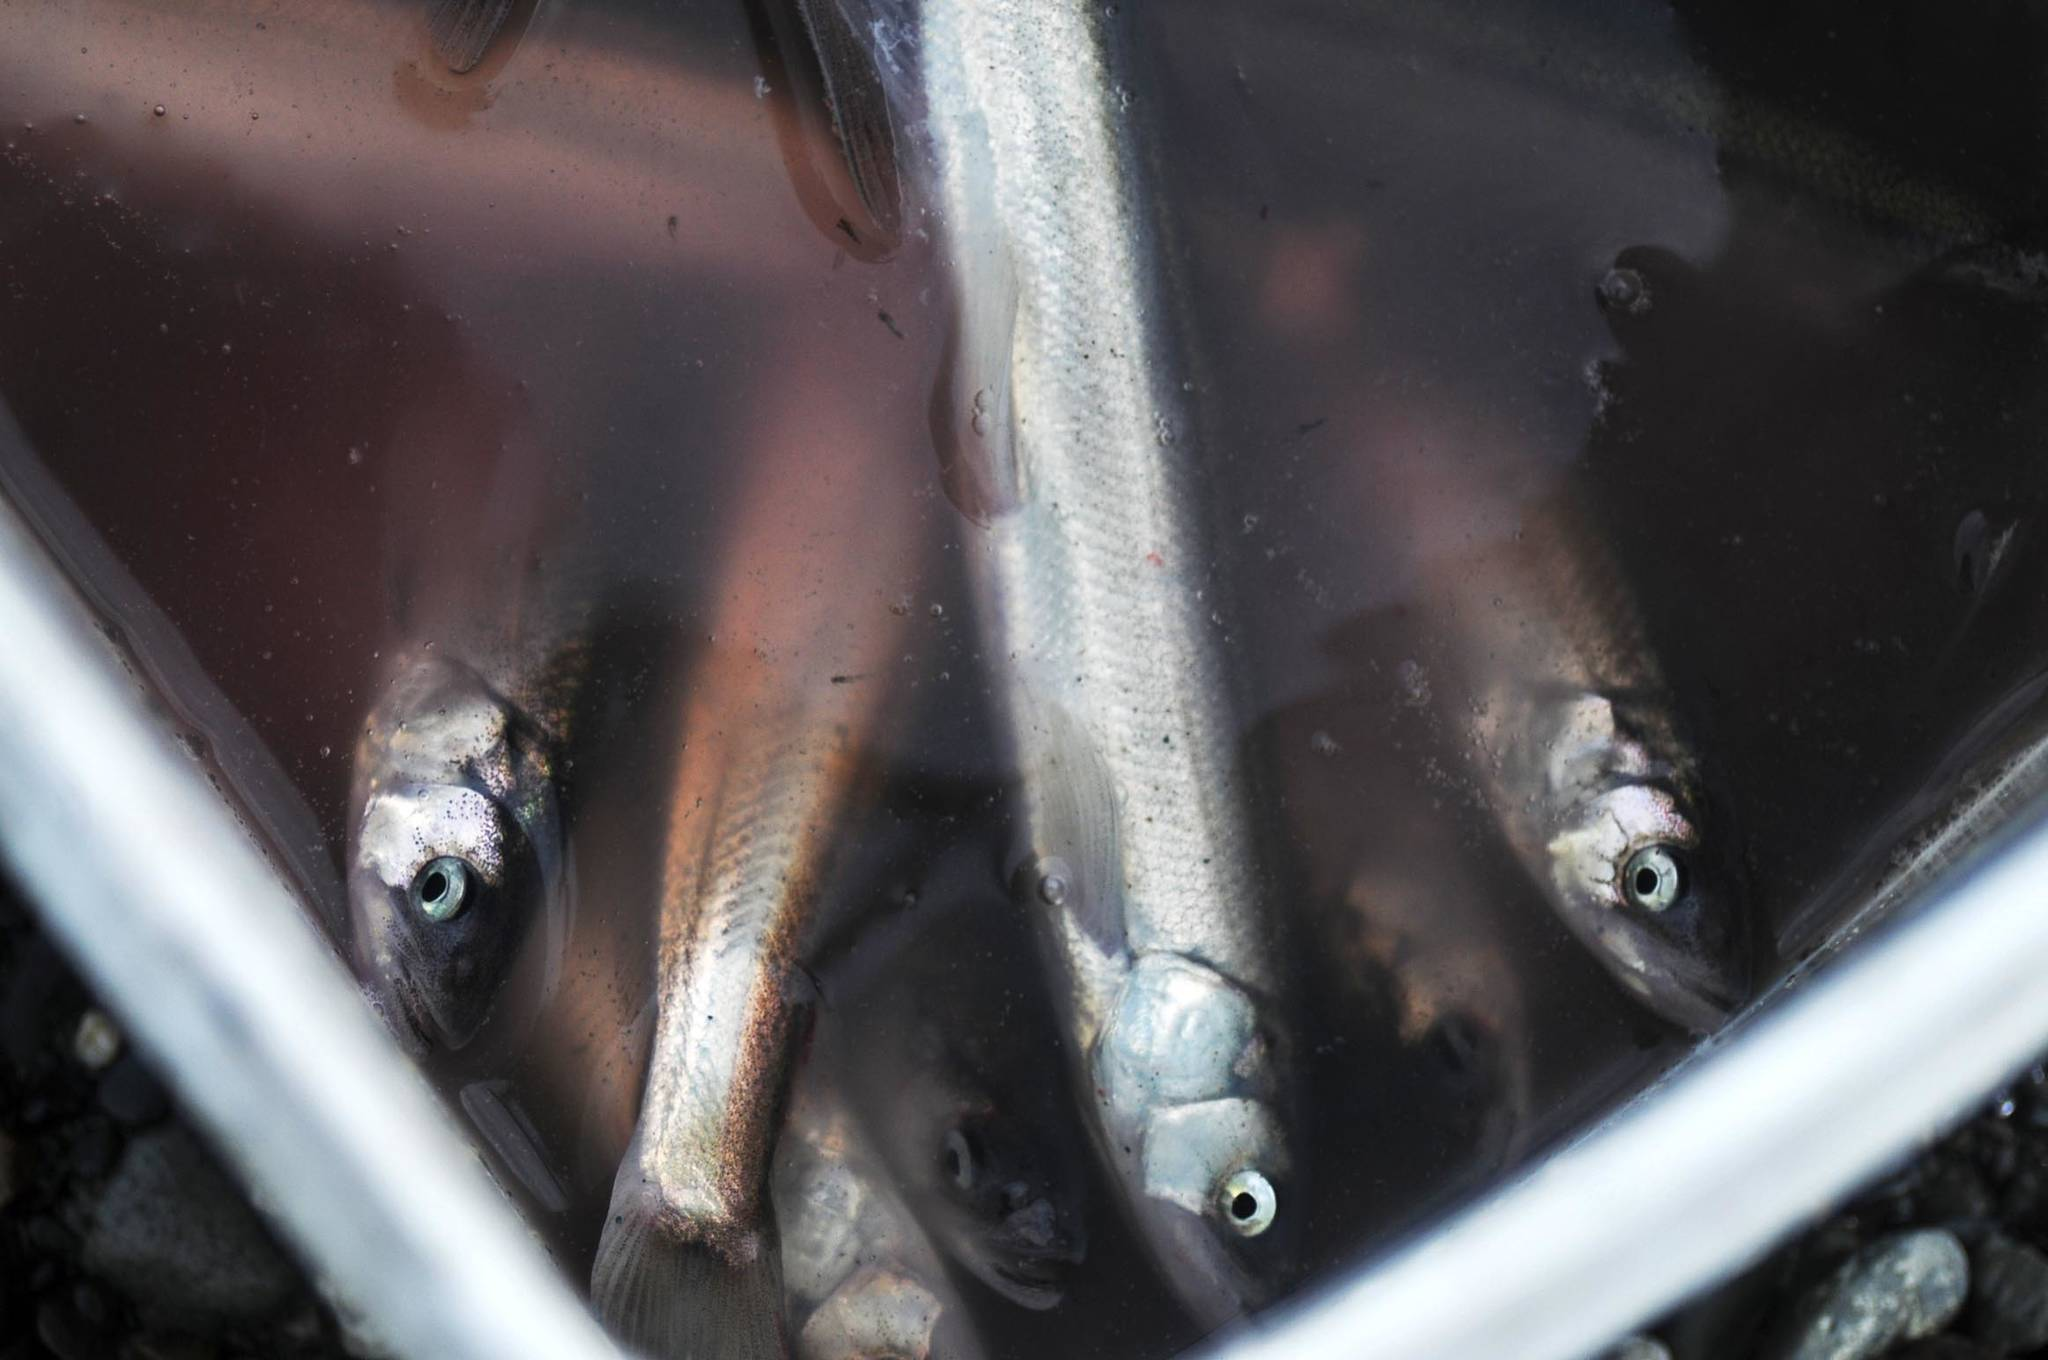 In this May 2016 photo, harvested eulachon float in a personal use fisherman's bucket on the north bank of the Kenai River in Kenai, Alaska. Eulachon, also called hooligan, are a type of smelt that returns in schools to rivers all over Southcentral Alaska each spring. The state Board of Fisheries recently approved a measure doubling the quota a small comercial fishery in Upper Cook Inlet takes from 100 tons to 200 tons each year, a small fraction of the total estimated biomass of about 48,000 tons, according to a Feb. 9 memo from the Alaska Department of Fish and Game. (Elizabeth Earl/Peninsula Clarion, file)